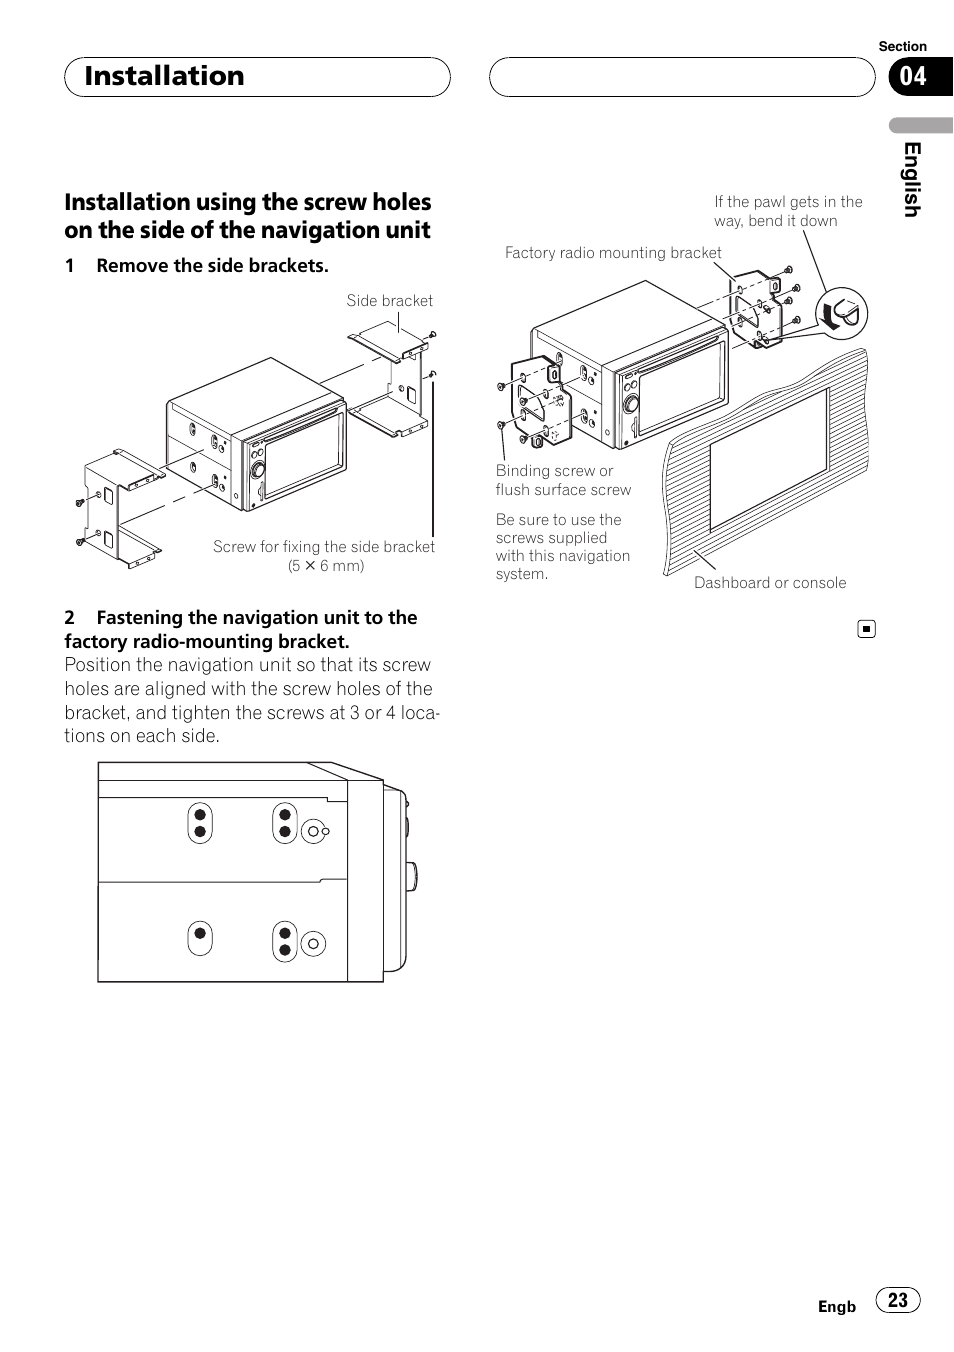 hight resolution of installation using the screw holes on the side of the navigation unit installation